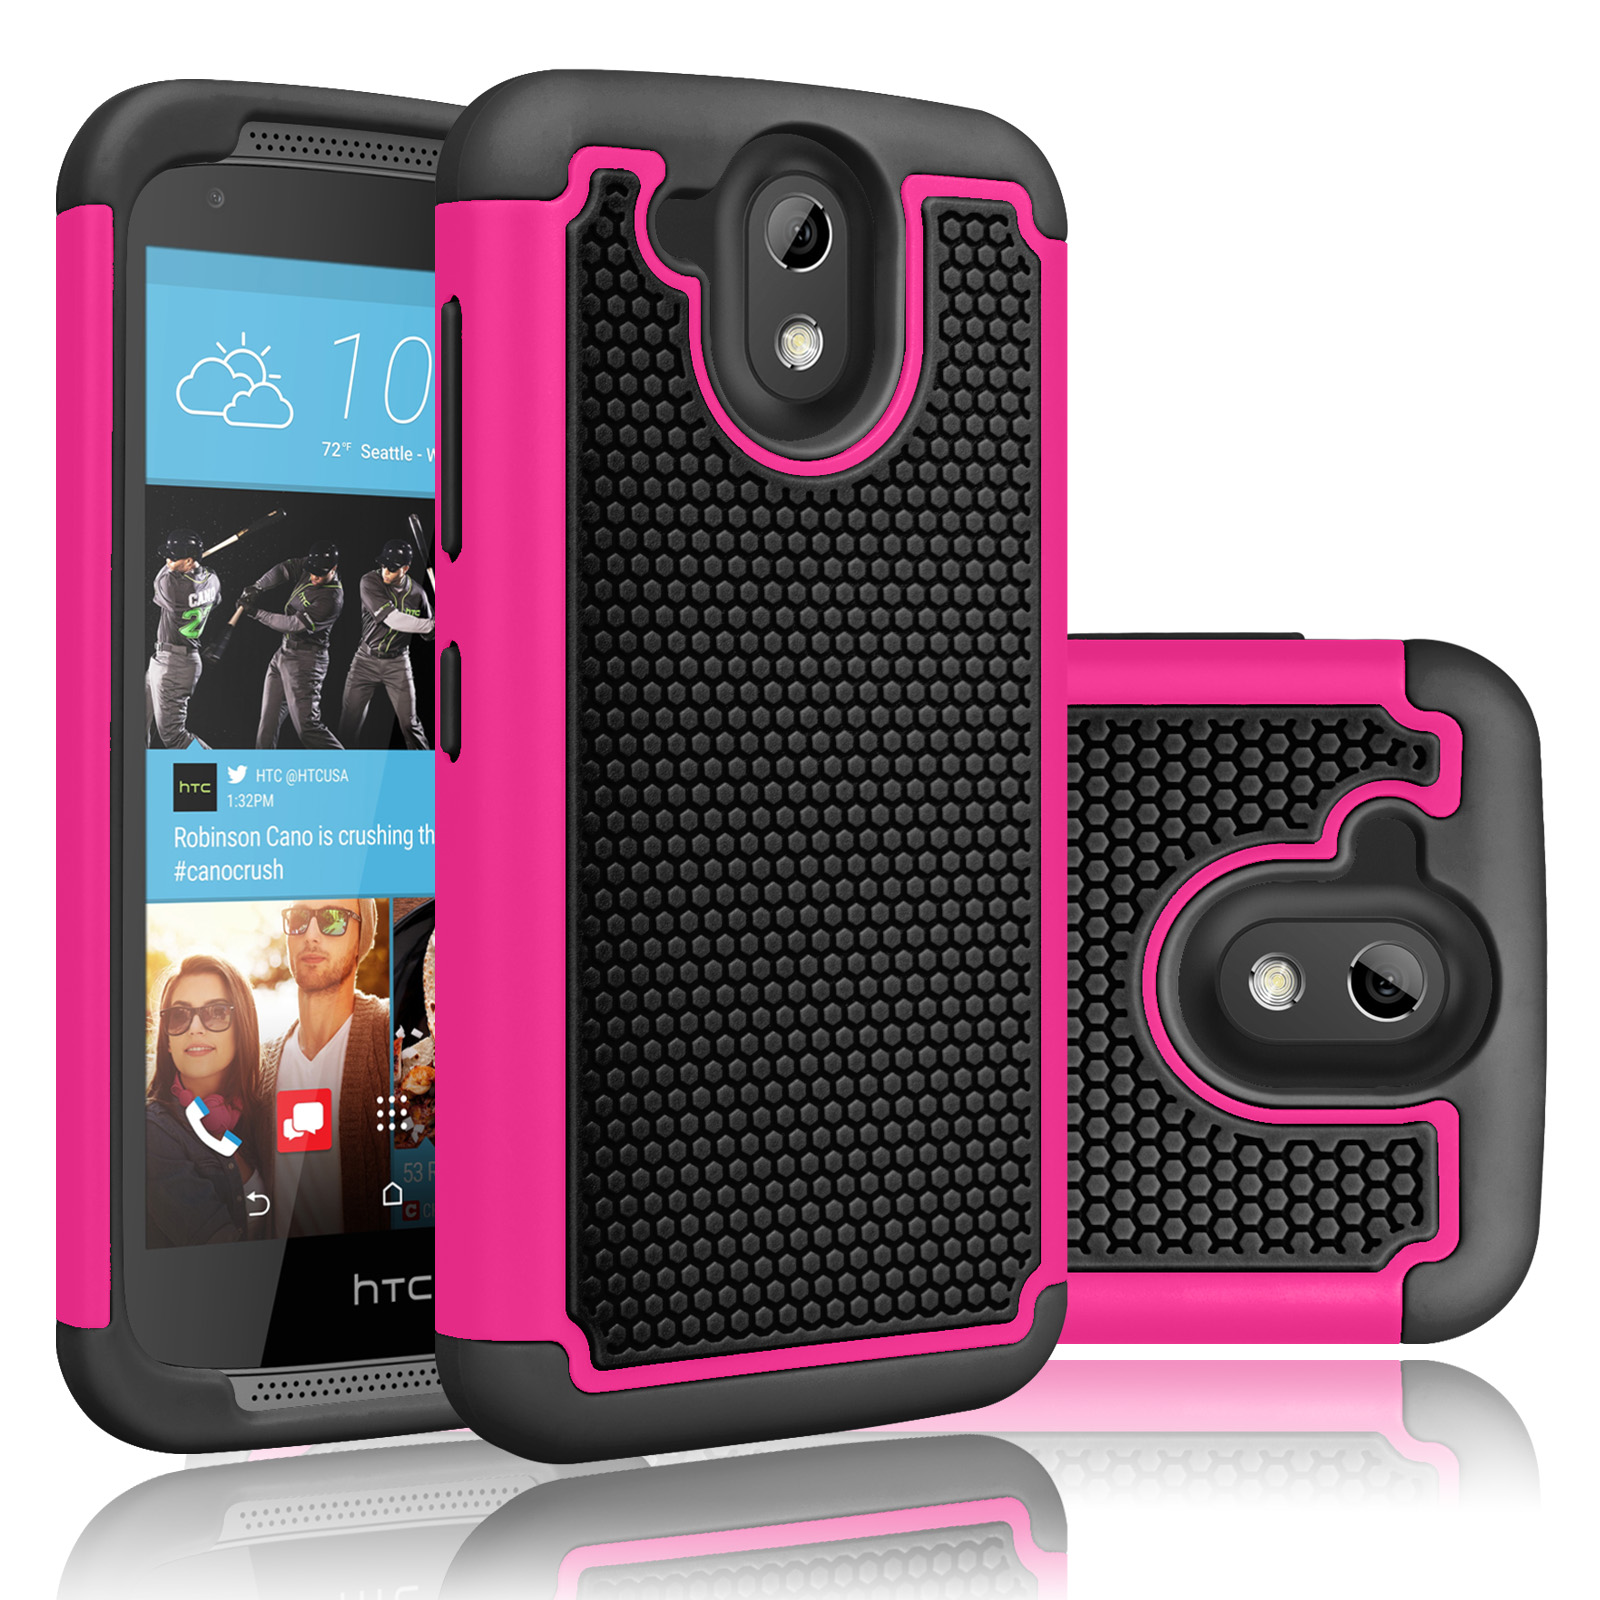 HTC Desire 526 Case, Tekcoo(TM) [Tmajor Series] Shock Absorbing Hybrid Rubber Plastic Impact Defender Rugged Slim Hard Protective Case Cover Shell For HTC Desire 526 4G LTE Verizon